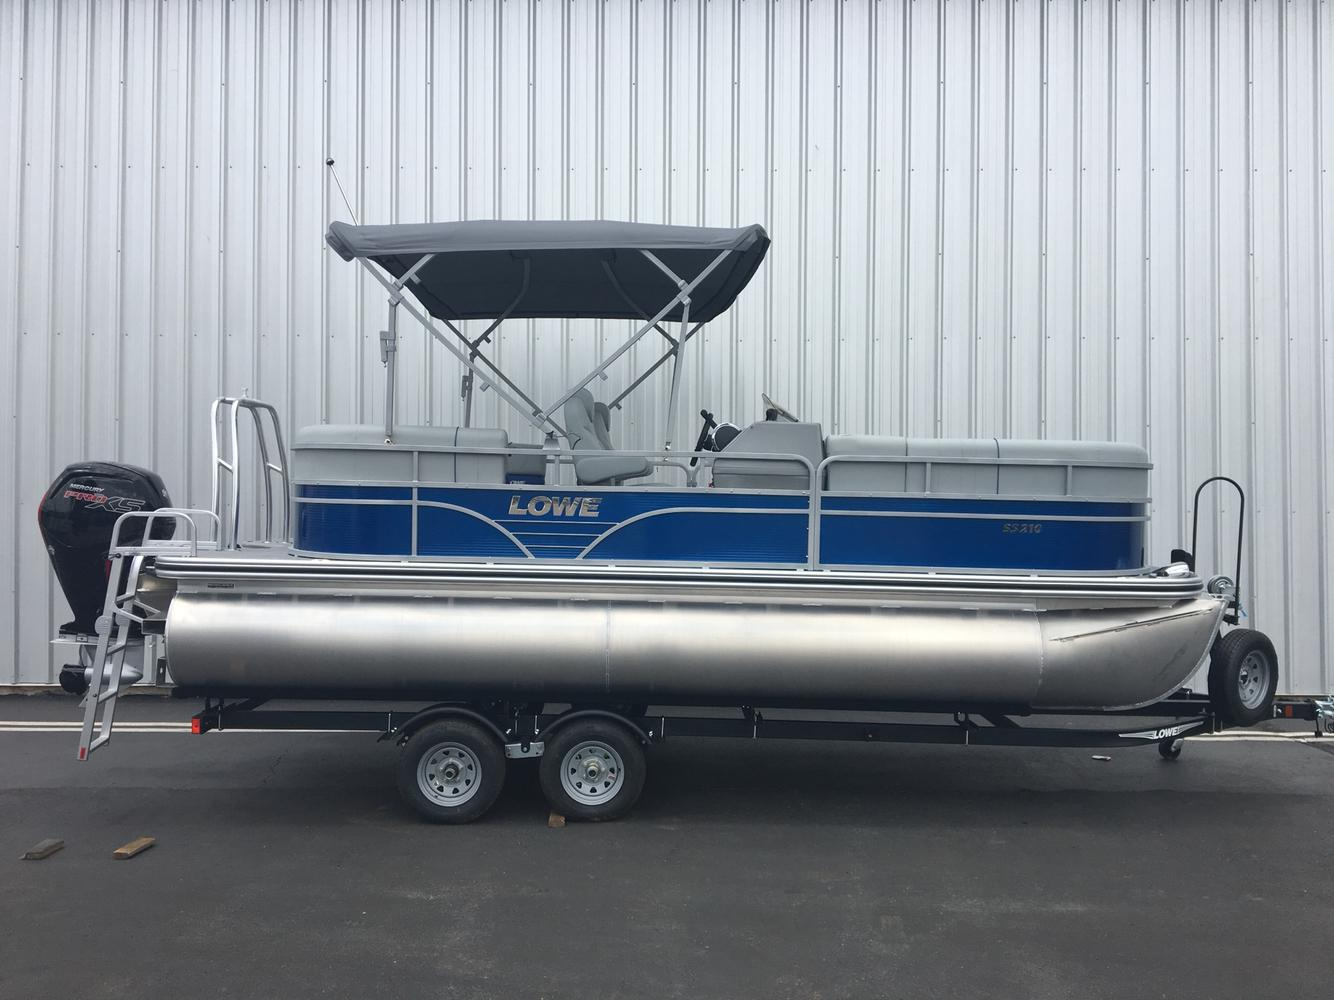 Inventory Parker Boats & Motors Amarillo, TX (806) 359-9097